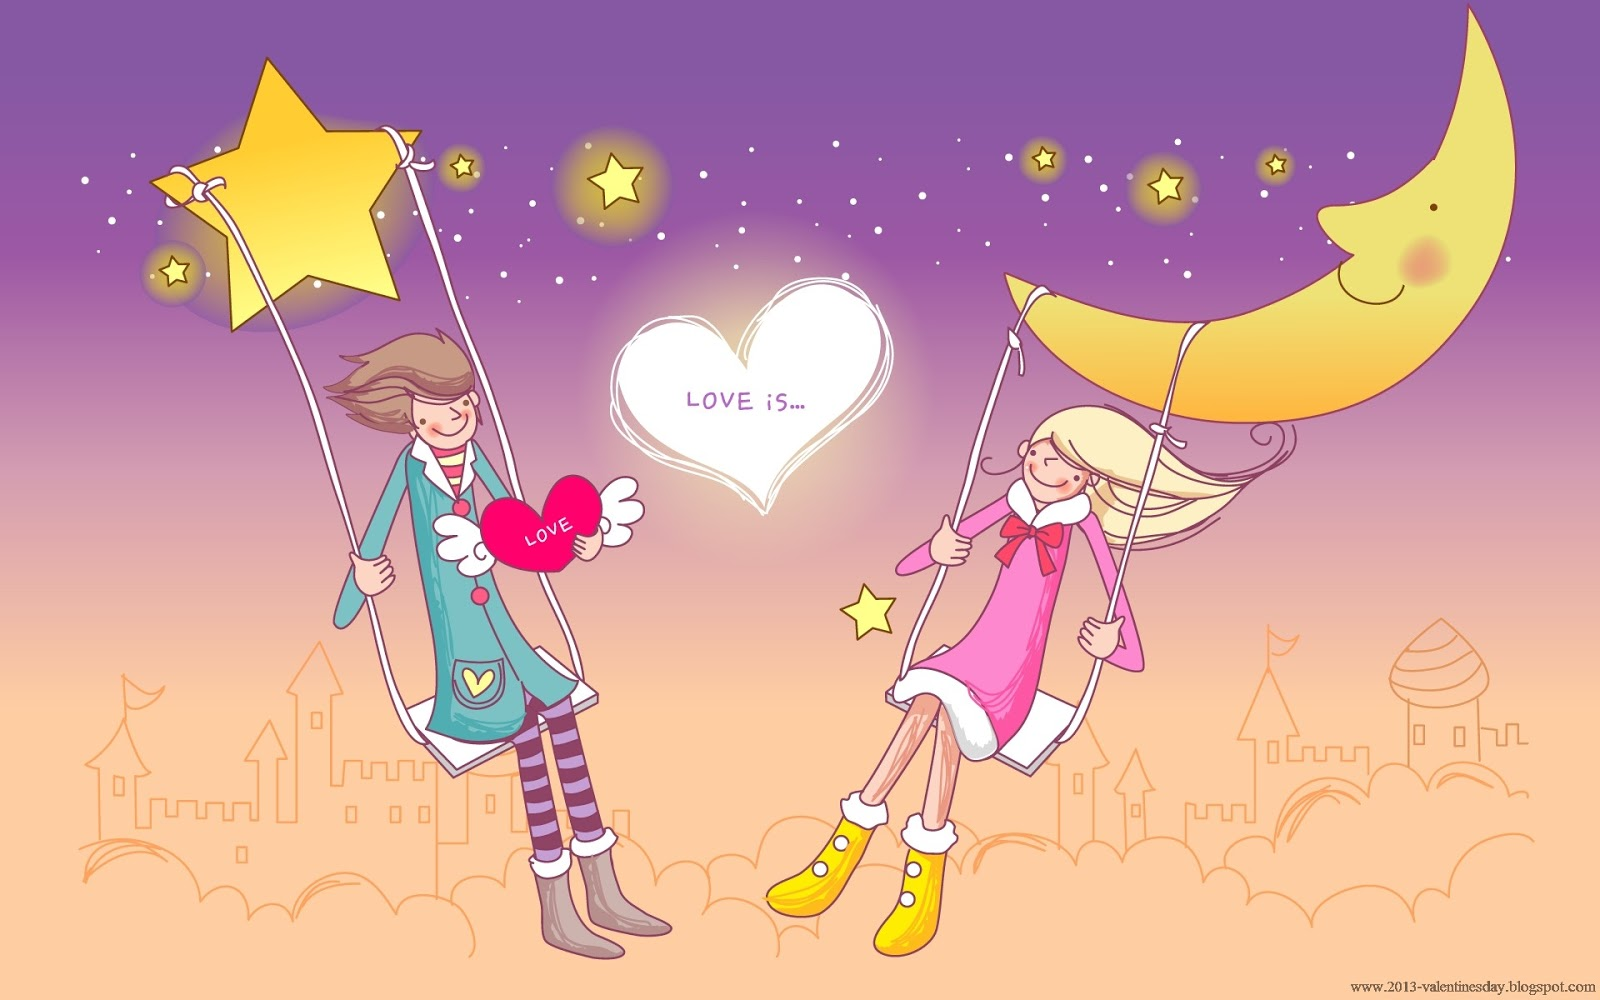 Love Wallpaper Hd cartoon : cute cartoon couple Love Hd wallpapers for Valentines day